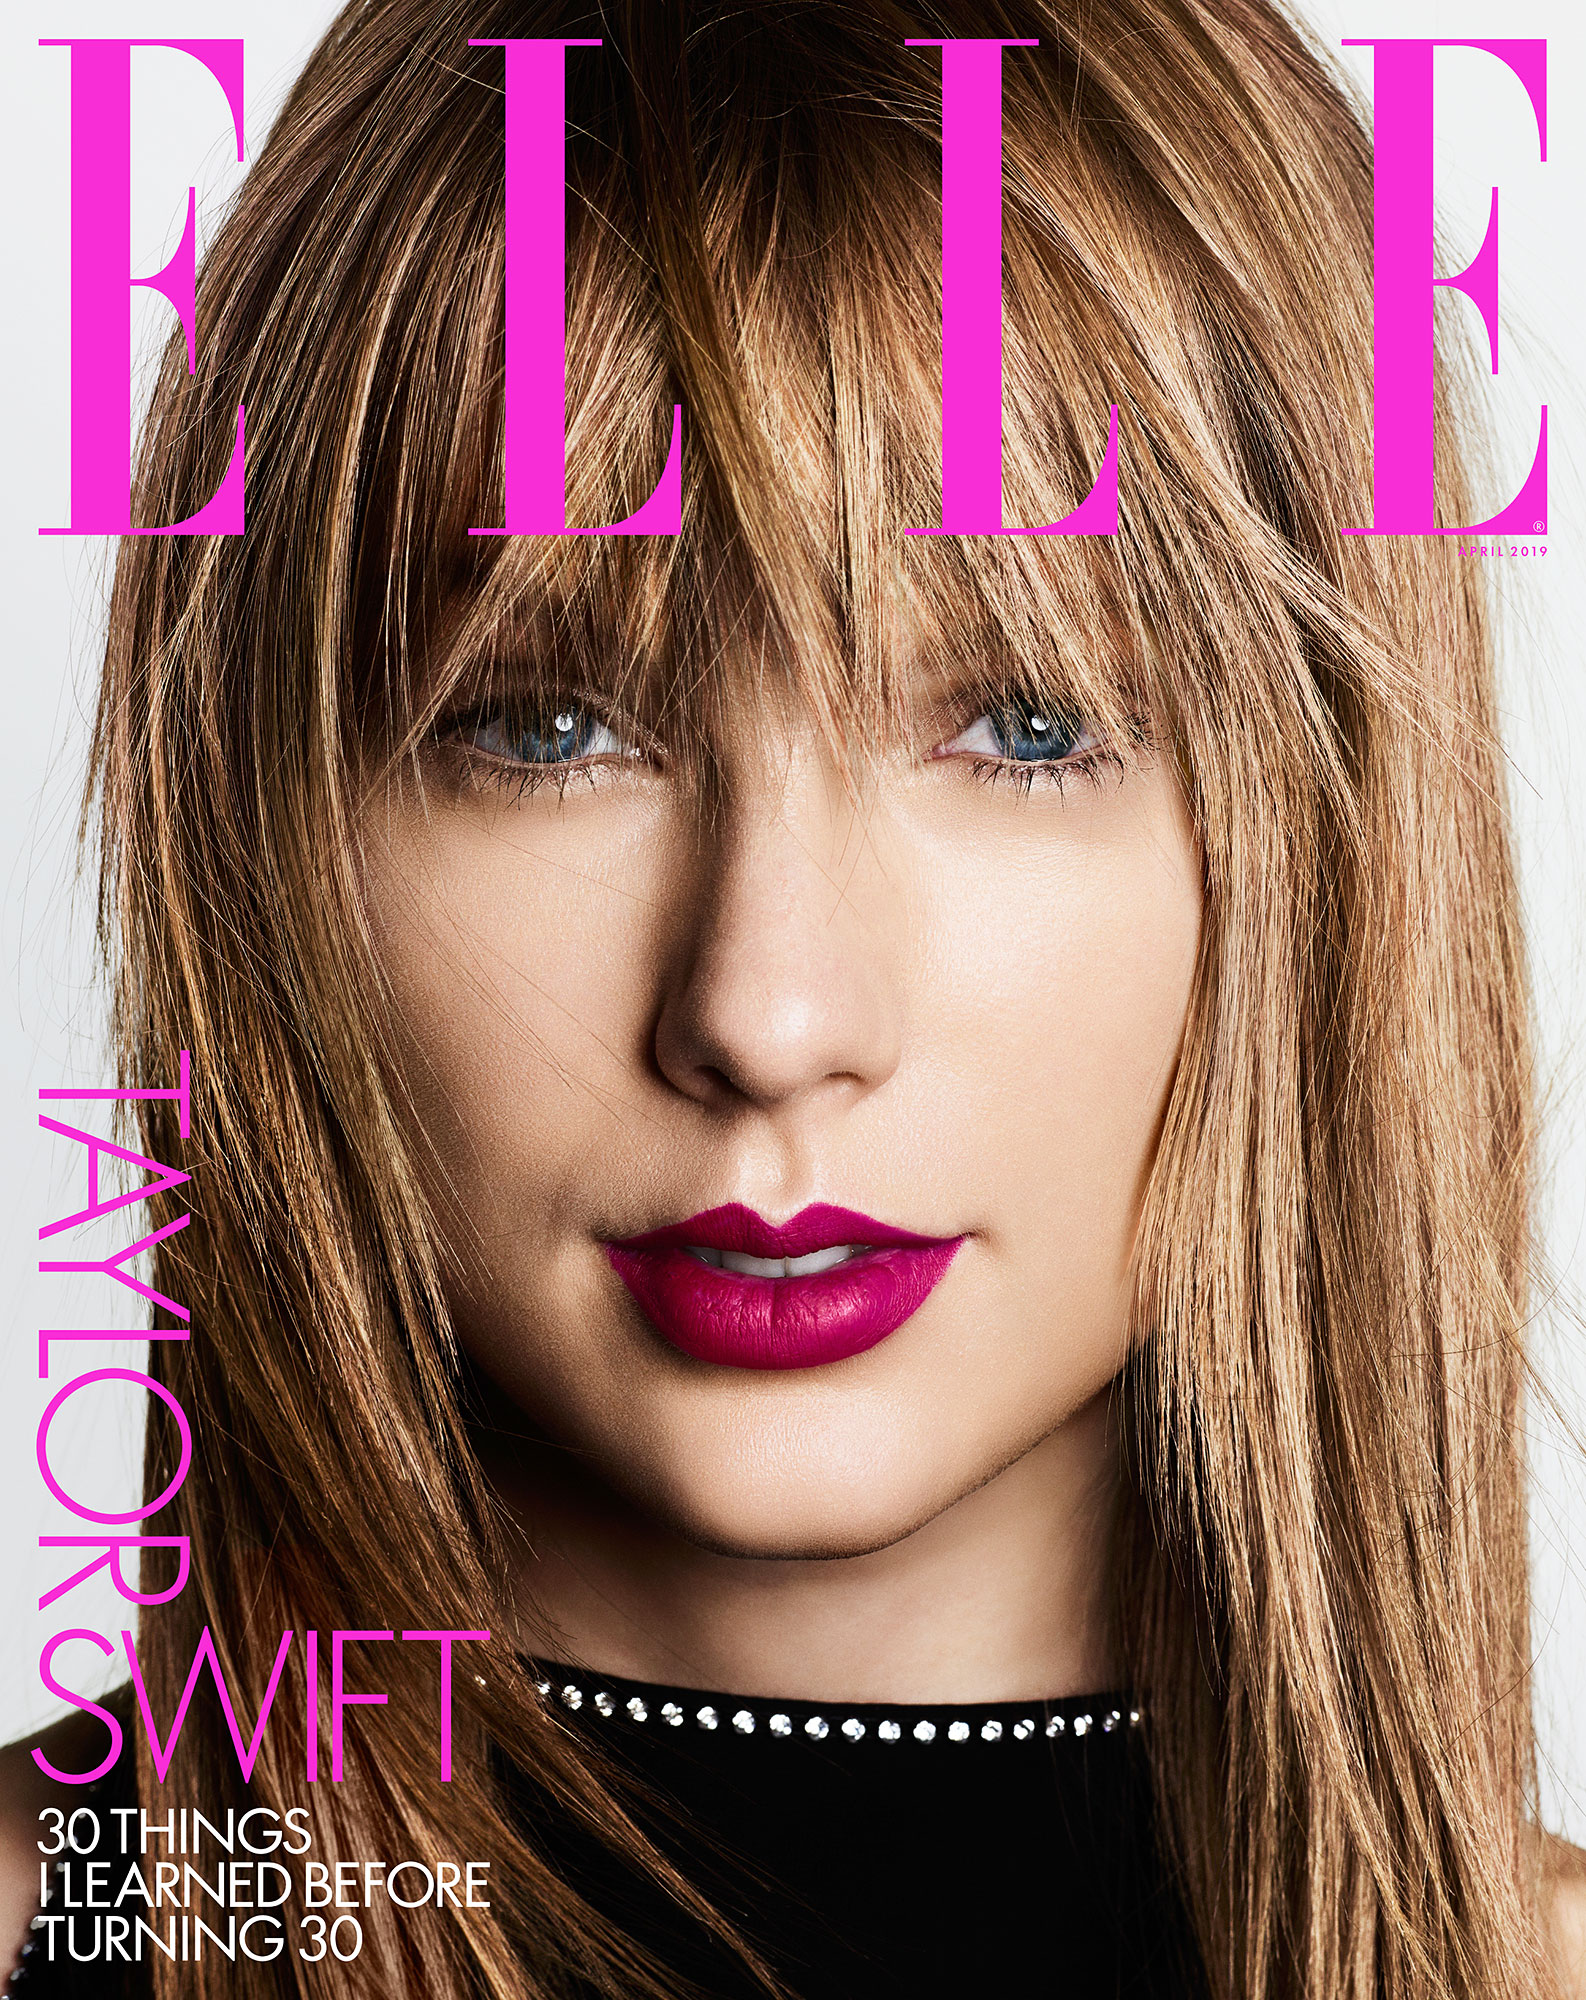 Taylor Swift ELLE Cover Kim Kardashian Feud